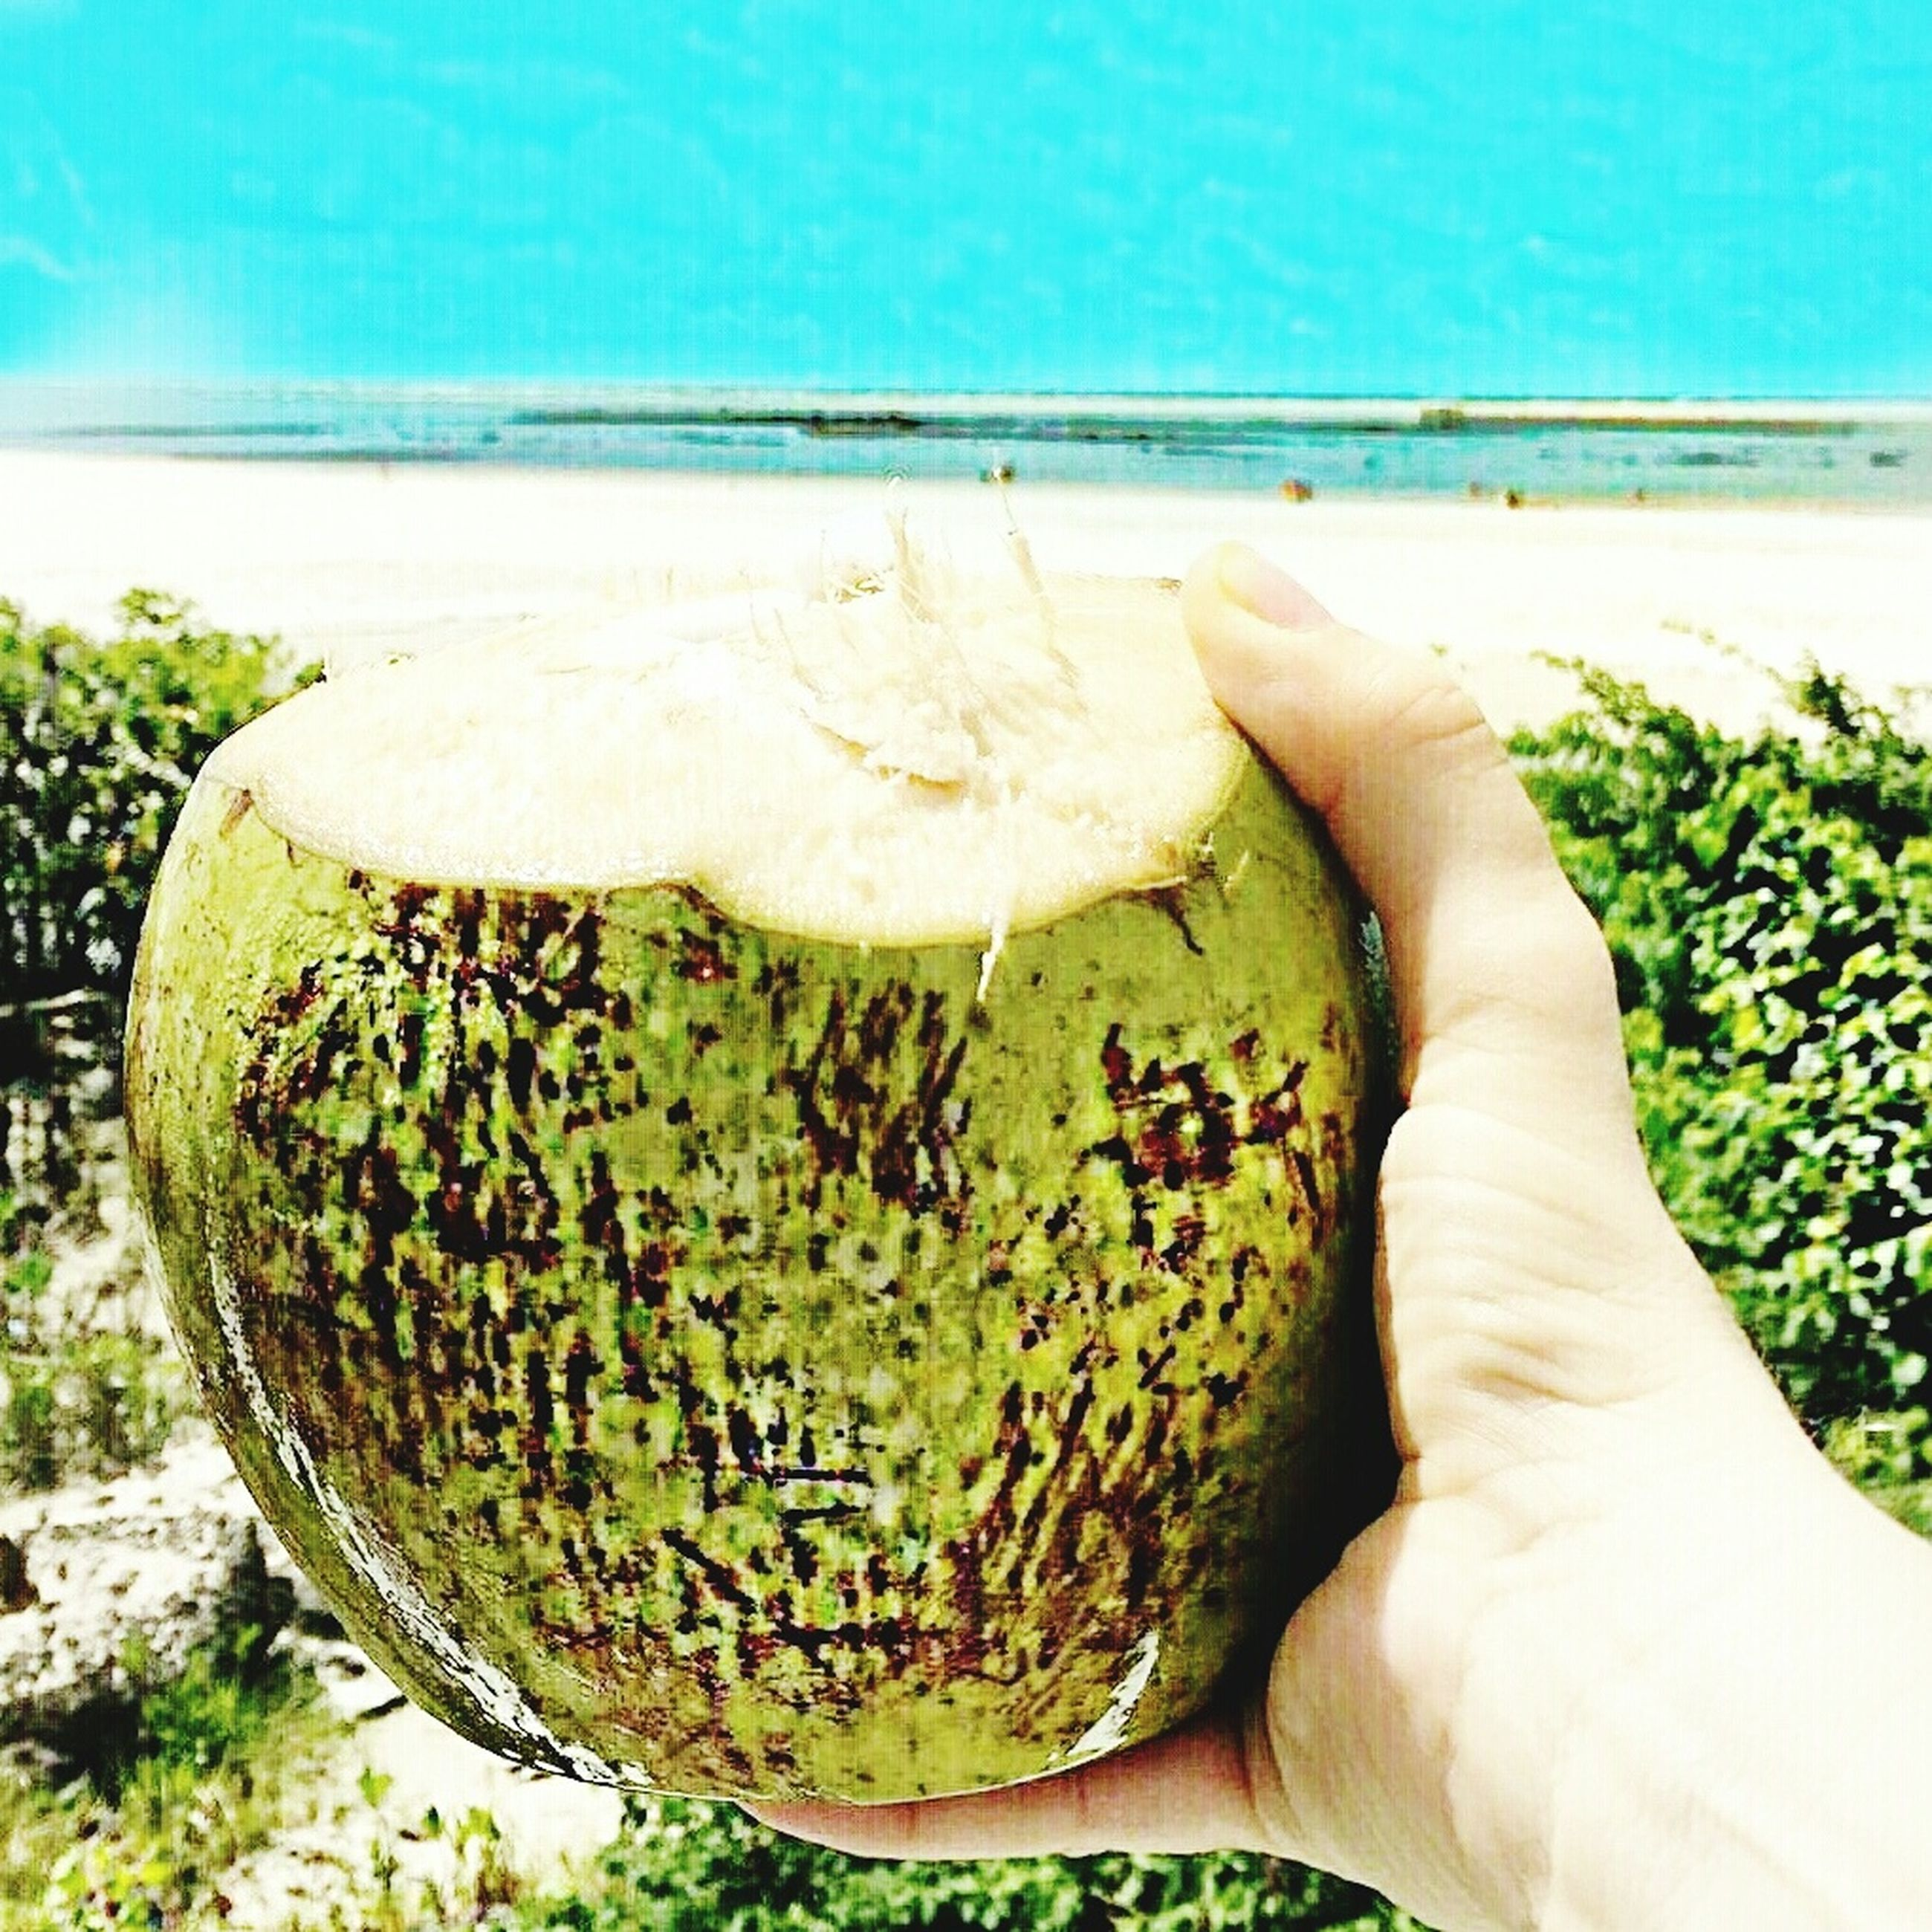 sea, human hand, horizon over water, human body part, one person, food and drink, sunlight, real people, nature, freshness, water, day, food, outdoors, sky, close-up, beauty in nature, coconut, beach, healthy eating